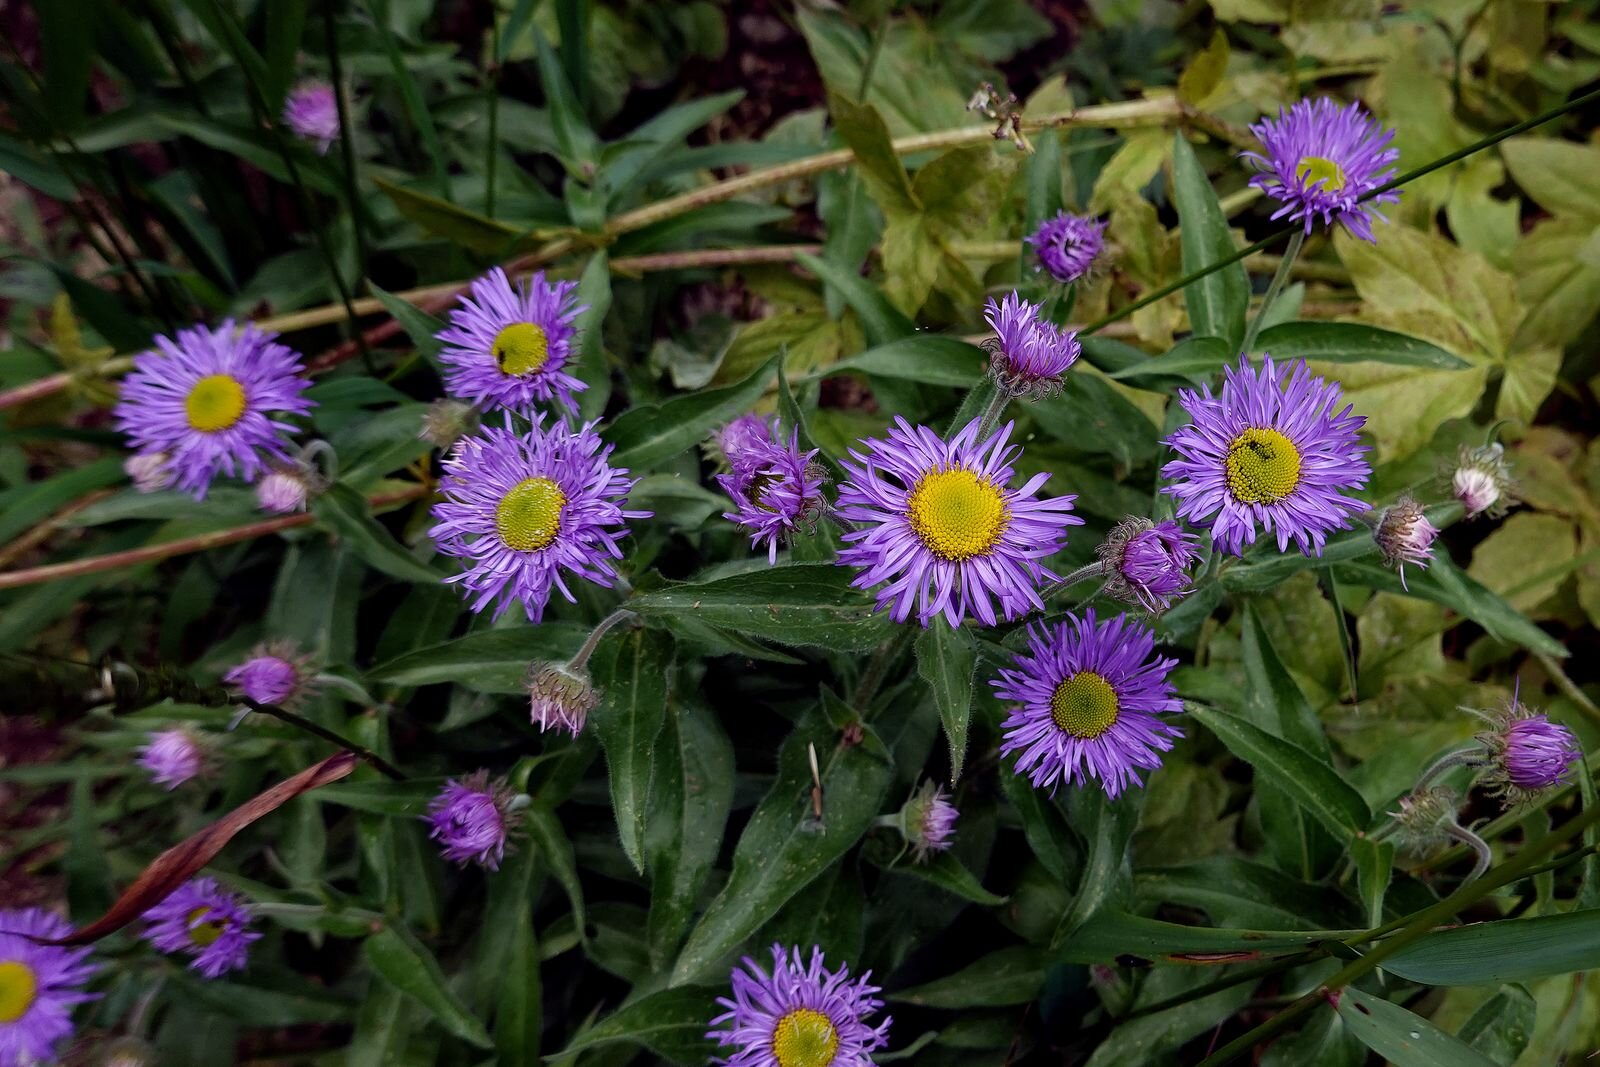 More Asters